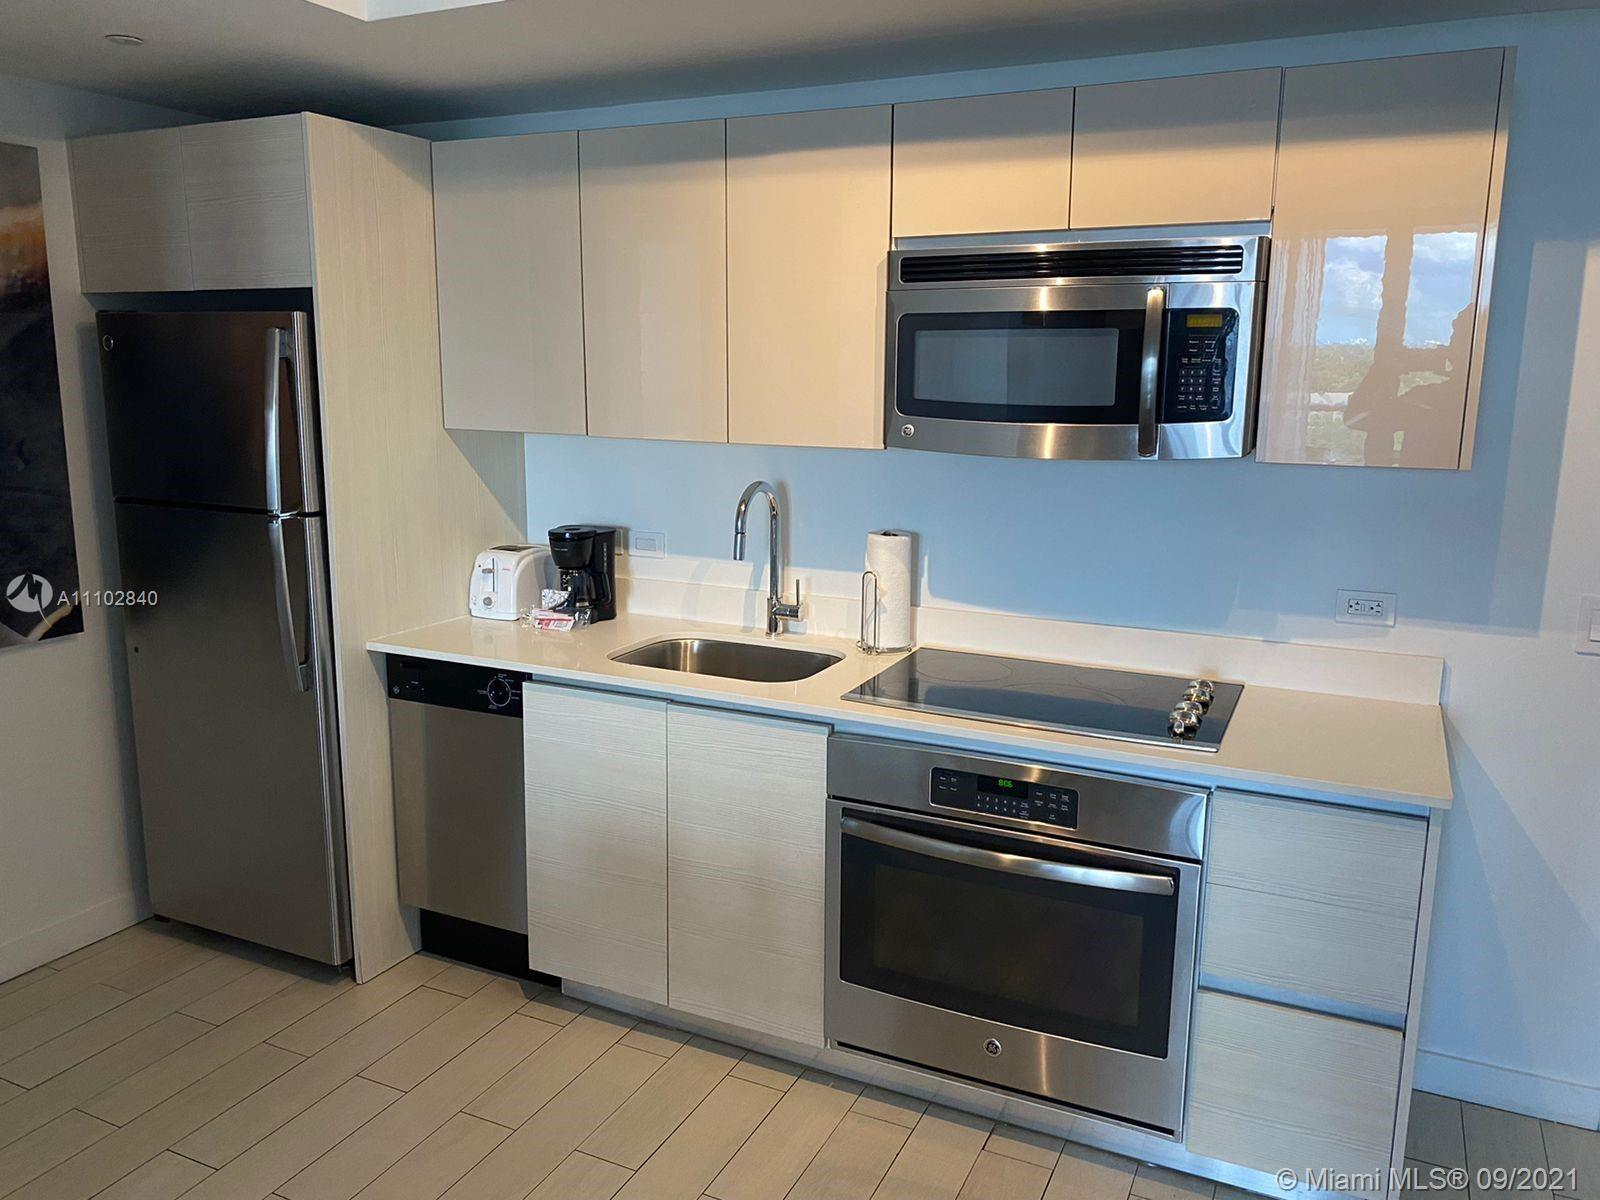 Beautiful apartment in the heart of Hallandale Beach. 2 bedrooms and 2 full baths. It is perfect for